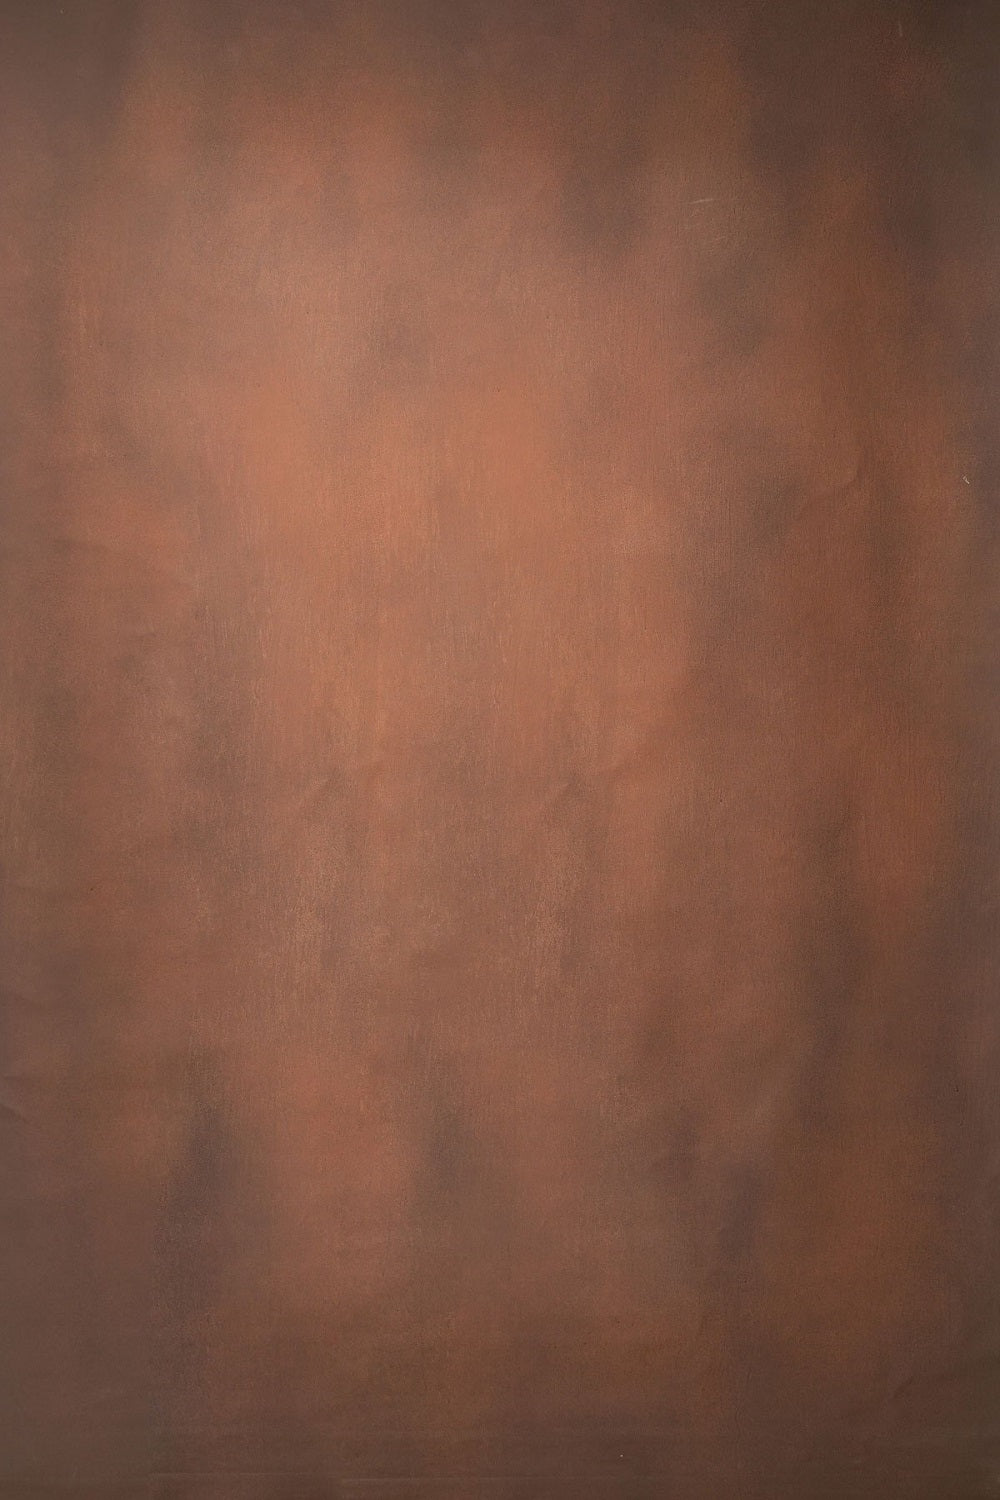 Clotstudio Abstract Dark Brown Light Orange color Textured Hand Painted Canvas Backdrop #clot 54